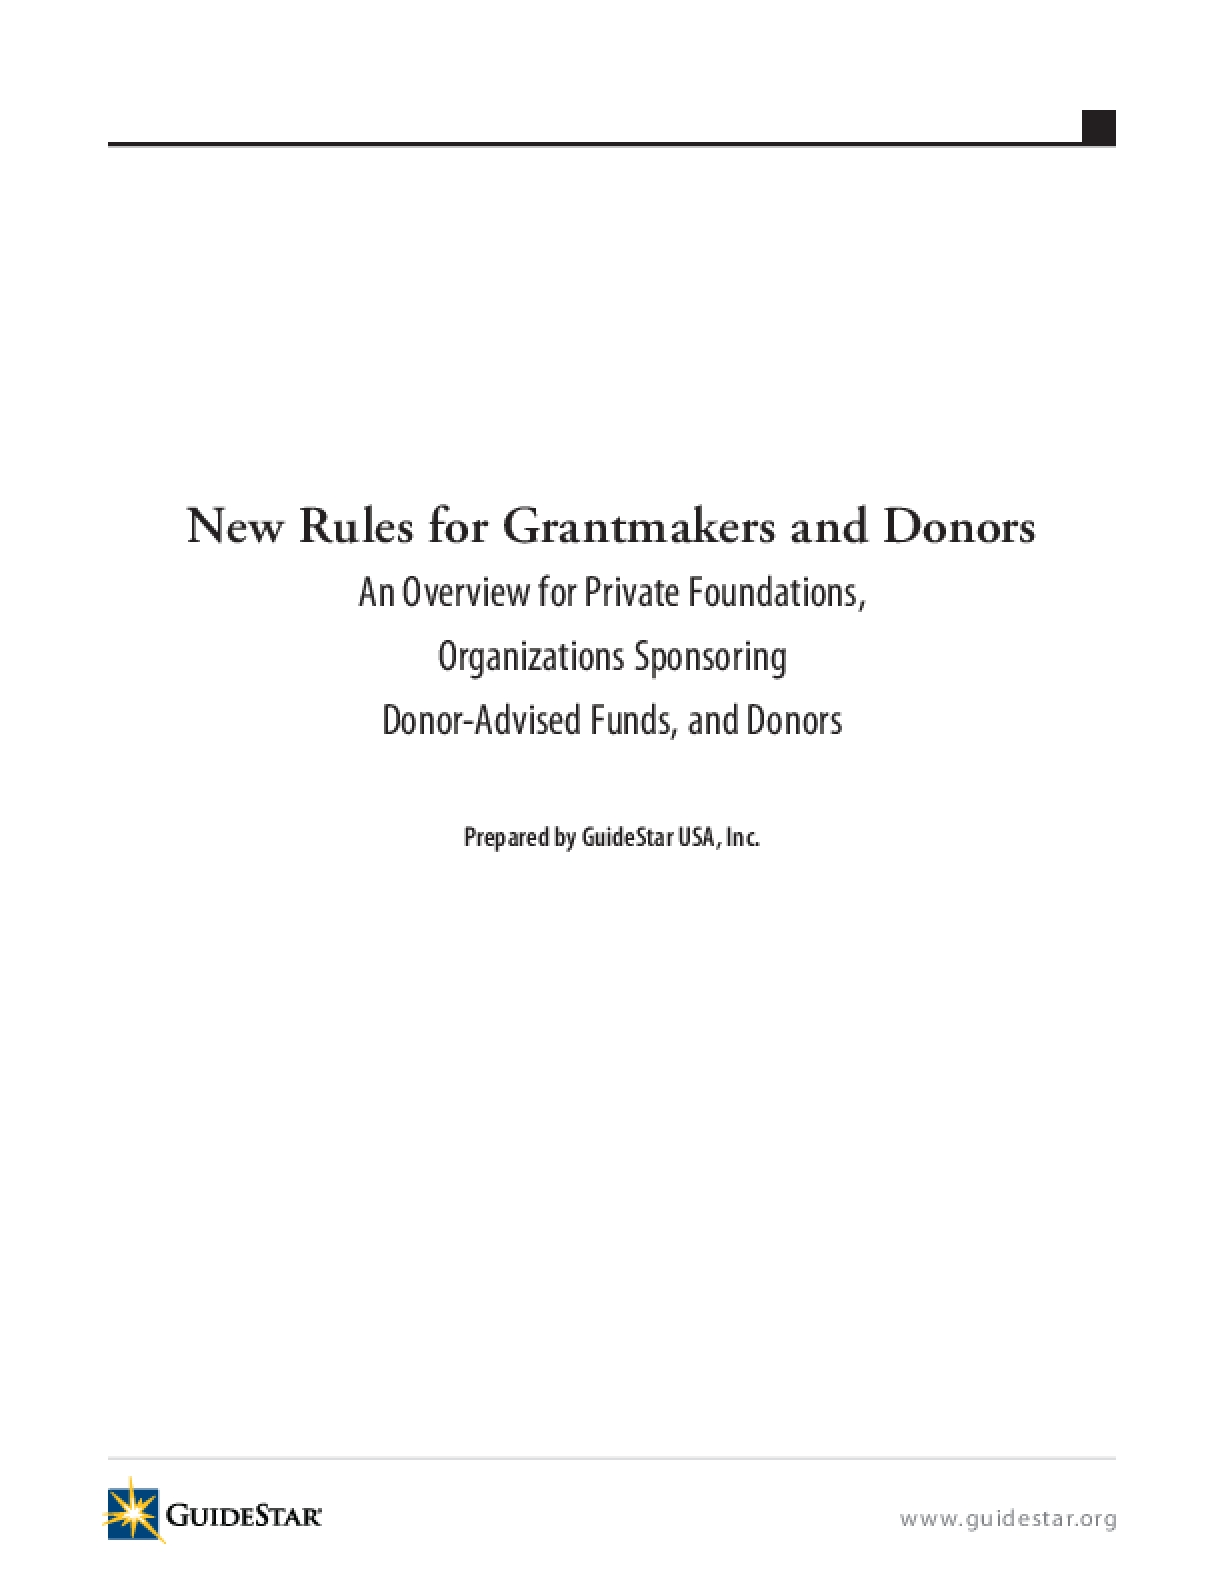 New Rules for Grantmakers and Donors: An Overview for Private Foundations, Organizations Sponsoring Donor-Advised Funds, and Donors